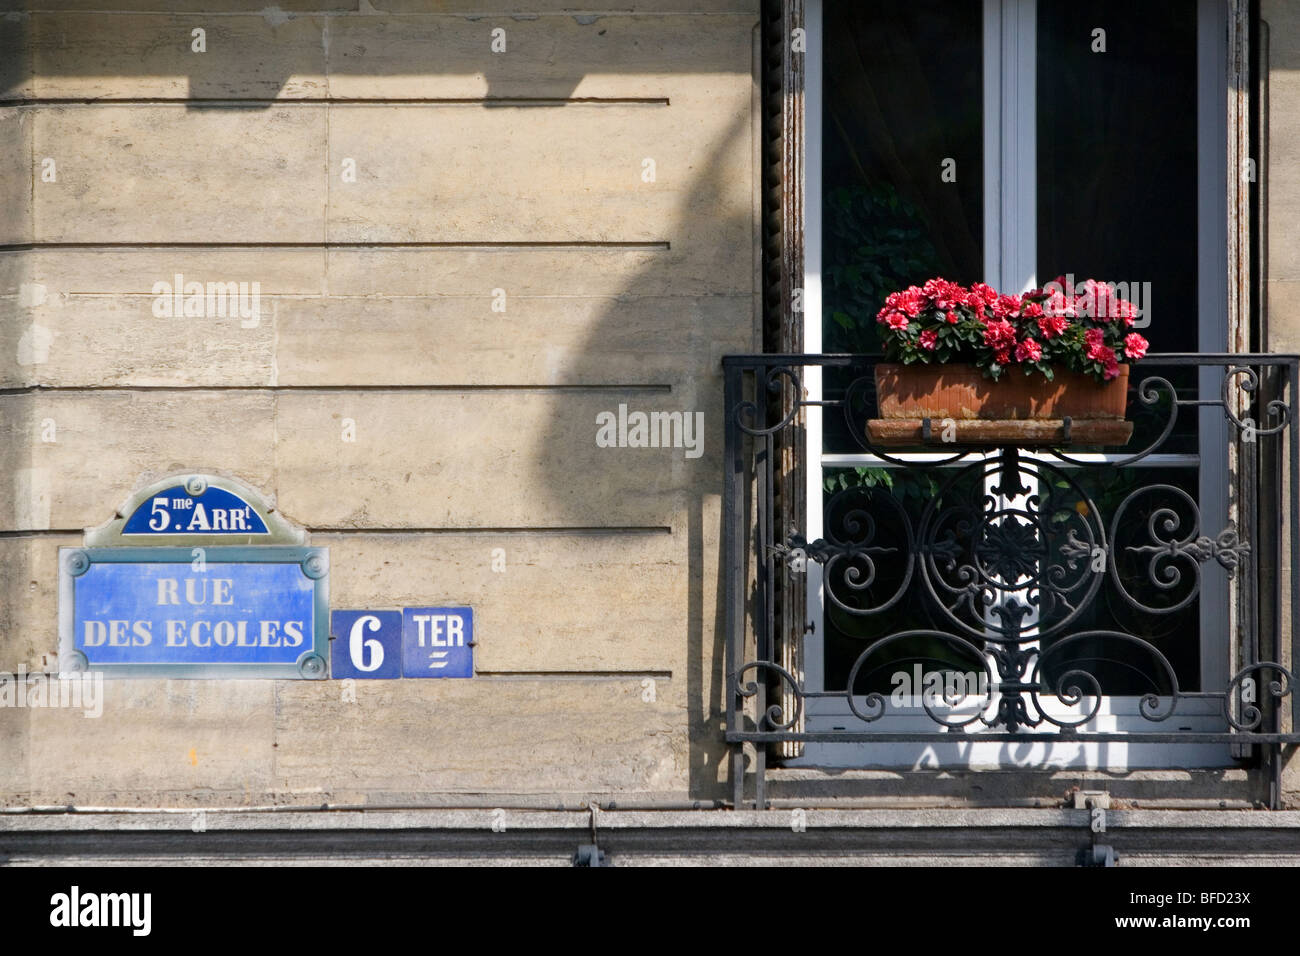 Flower box on the balcony of a building located in the Latin Quarter of Paris, France. - Stock Image